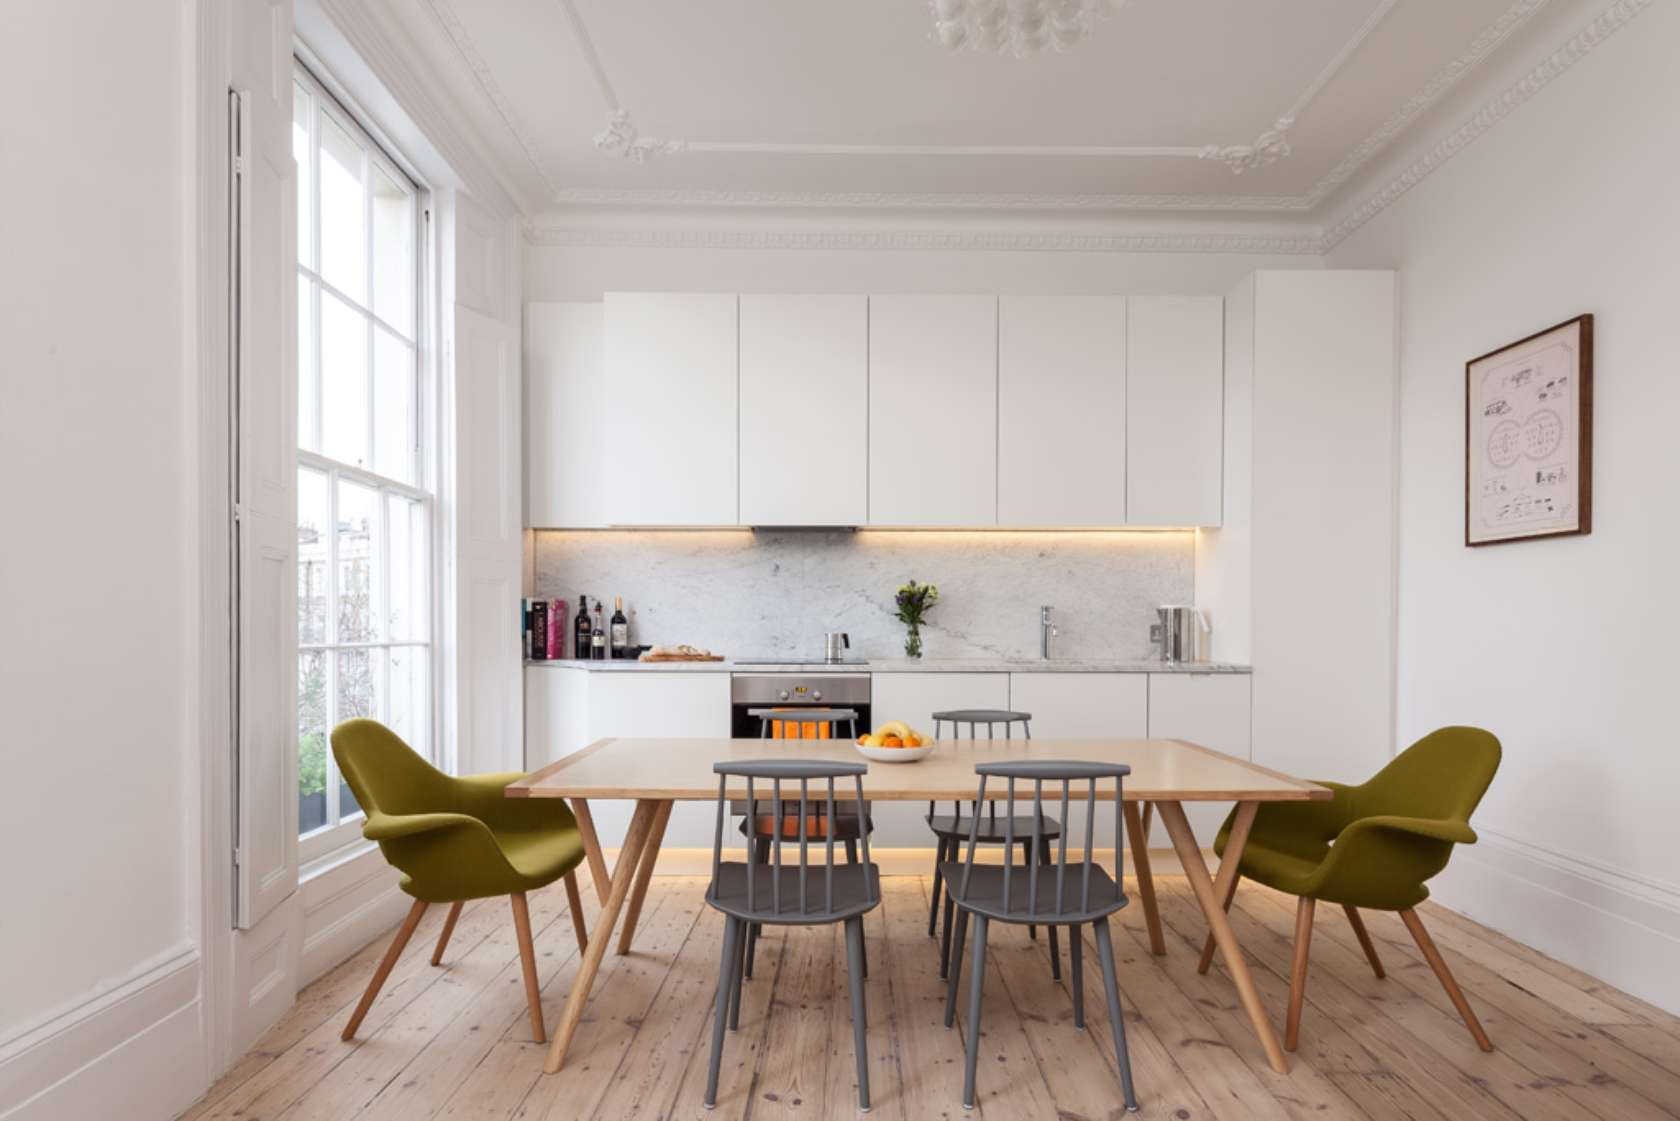 100 Kitchen Chairs Design Ideas. Neat white facades of the furniture